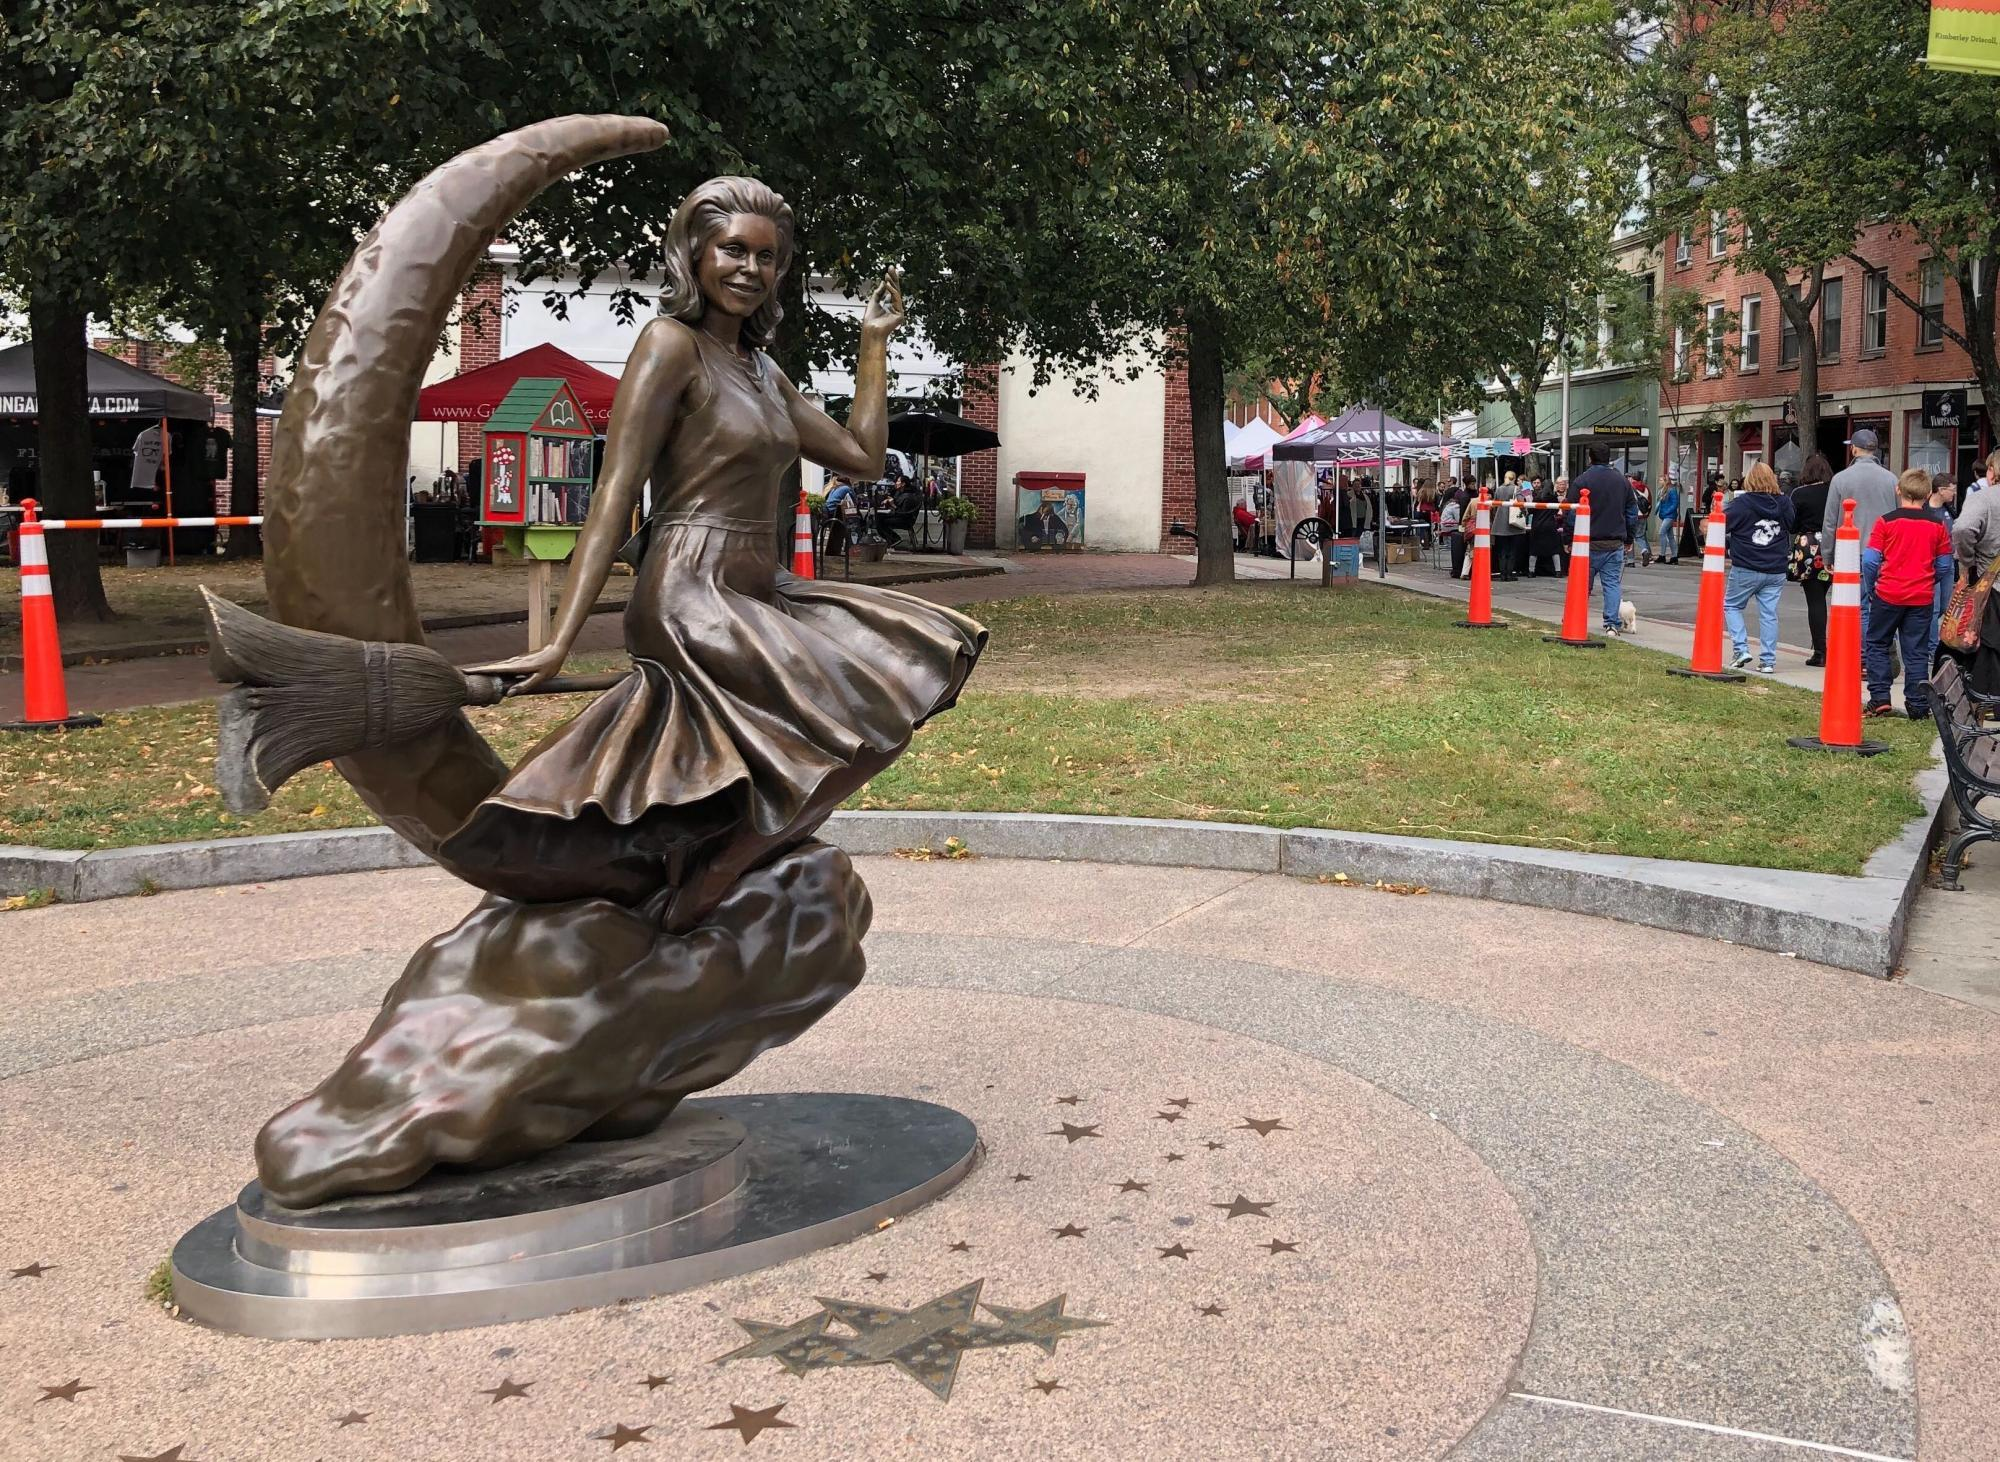 The Bewitched statue in downtown Salem